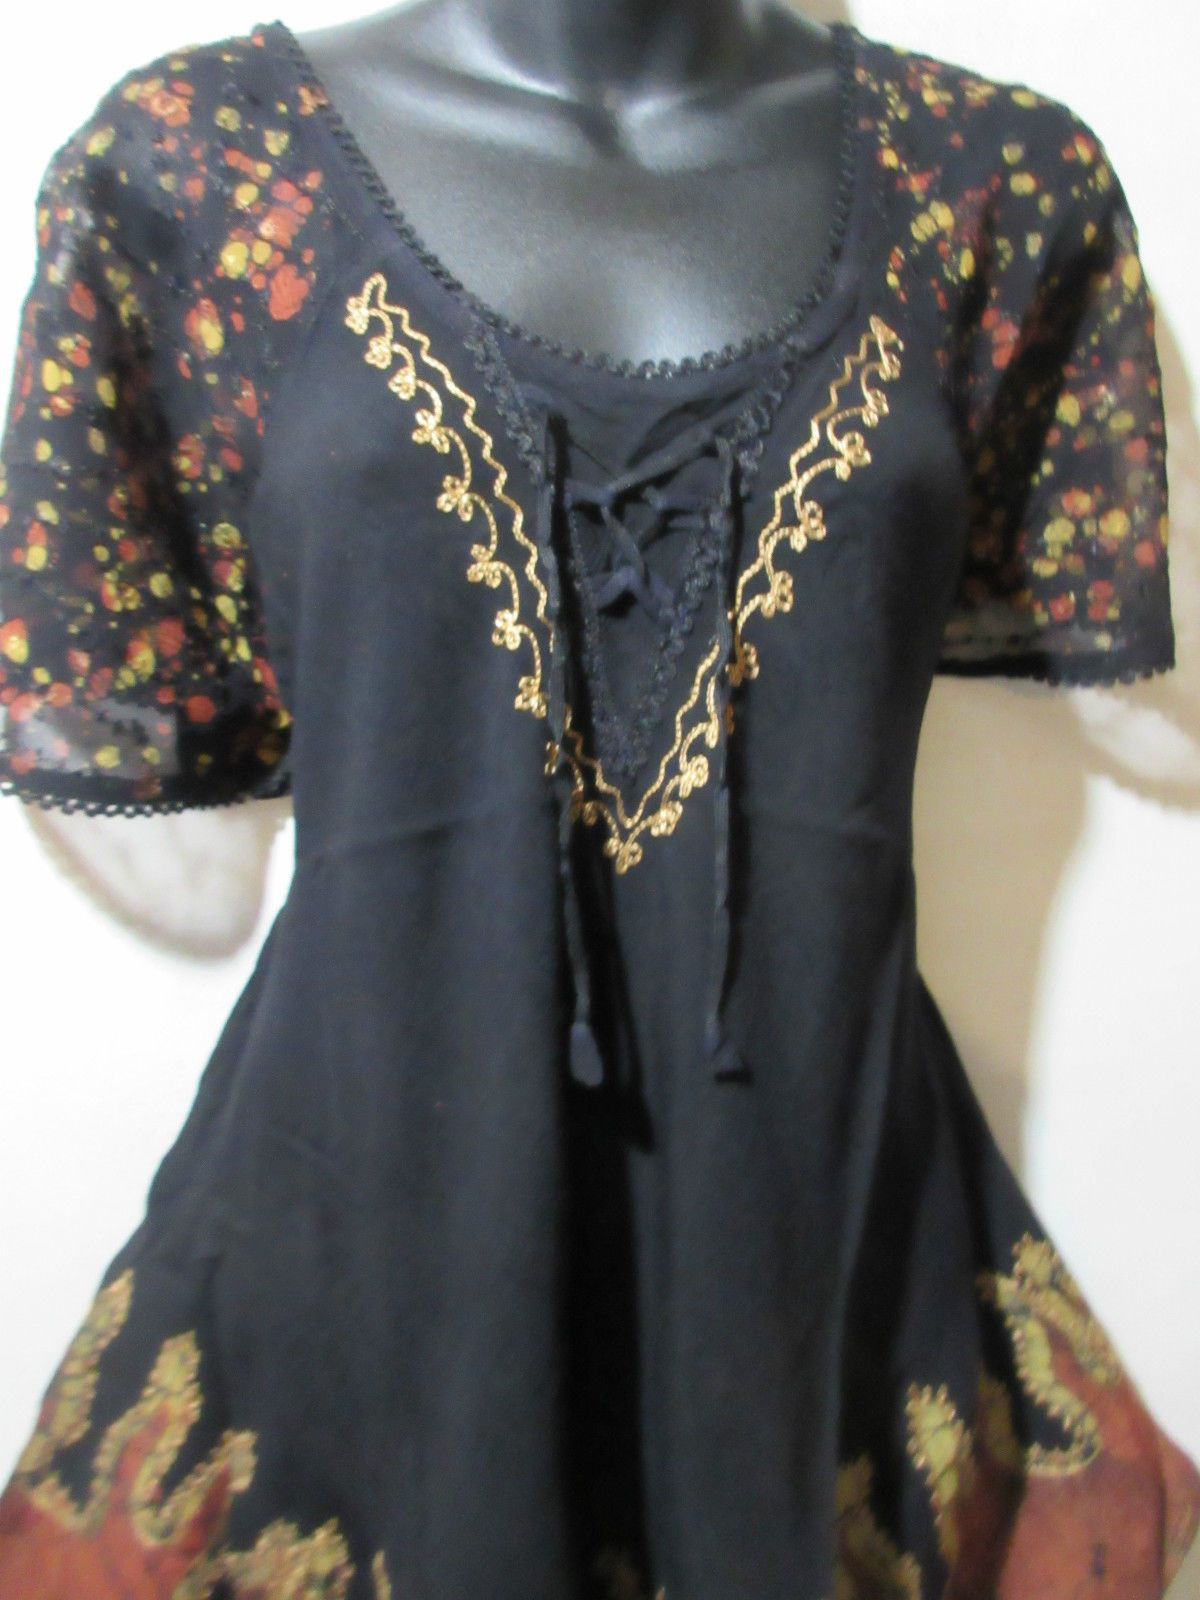 Rust lace bodysuit  Top Fits L XL X Plus Tunic Black Rust Brown Lace Sleeves Bell